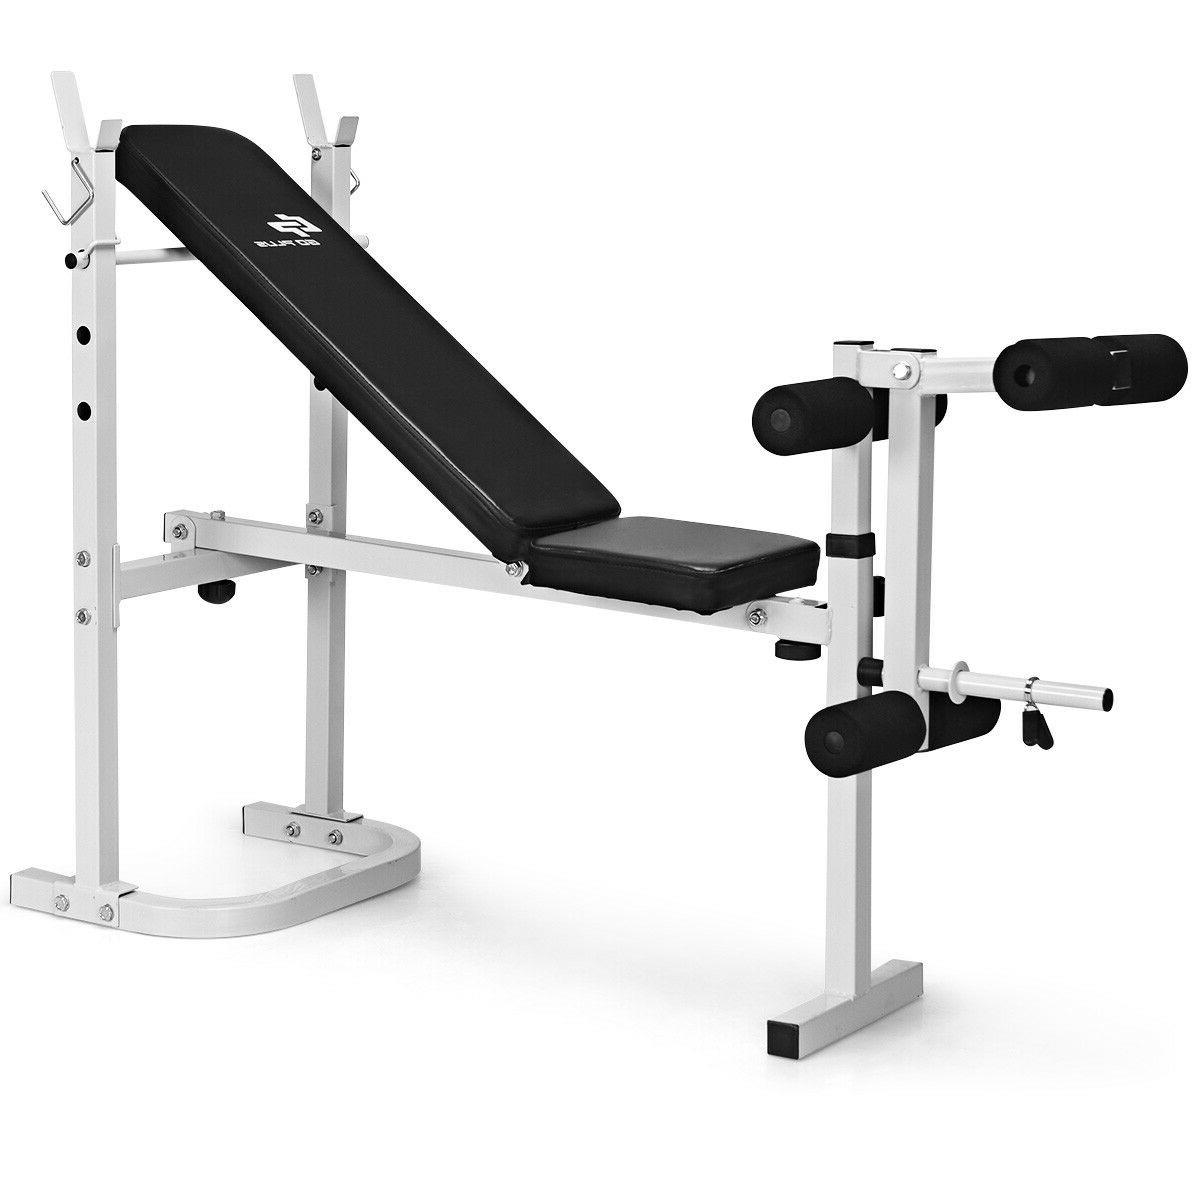 HIGH Steel Olympic Folding Weight Bench 3 Backrest